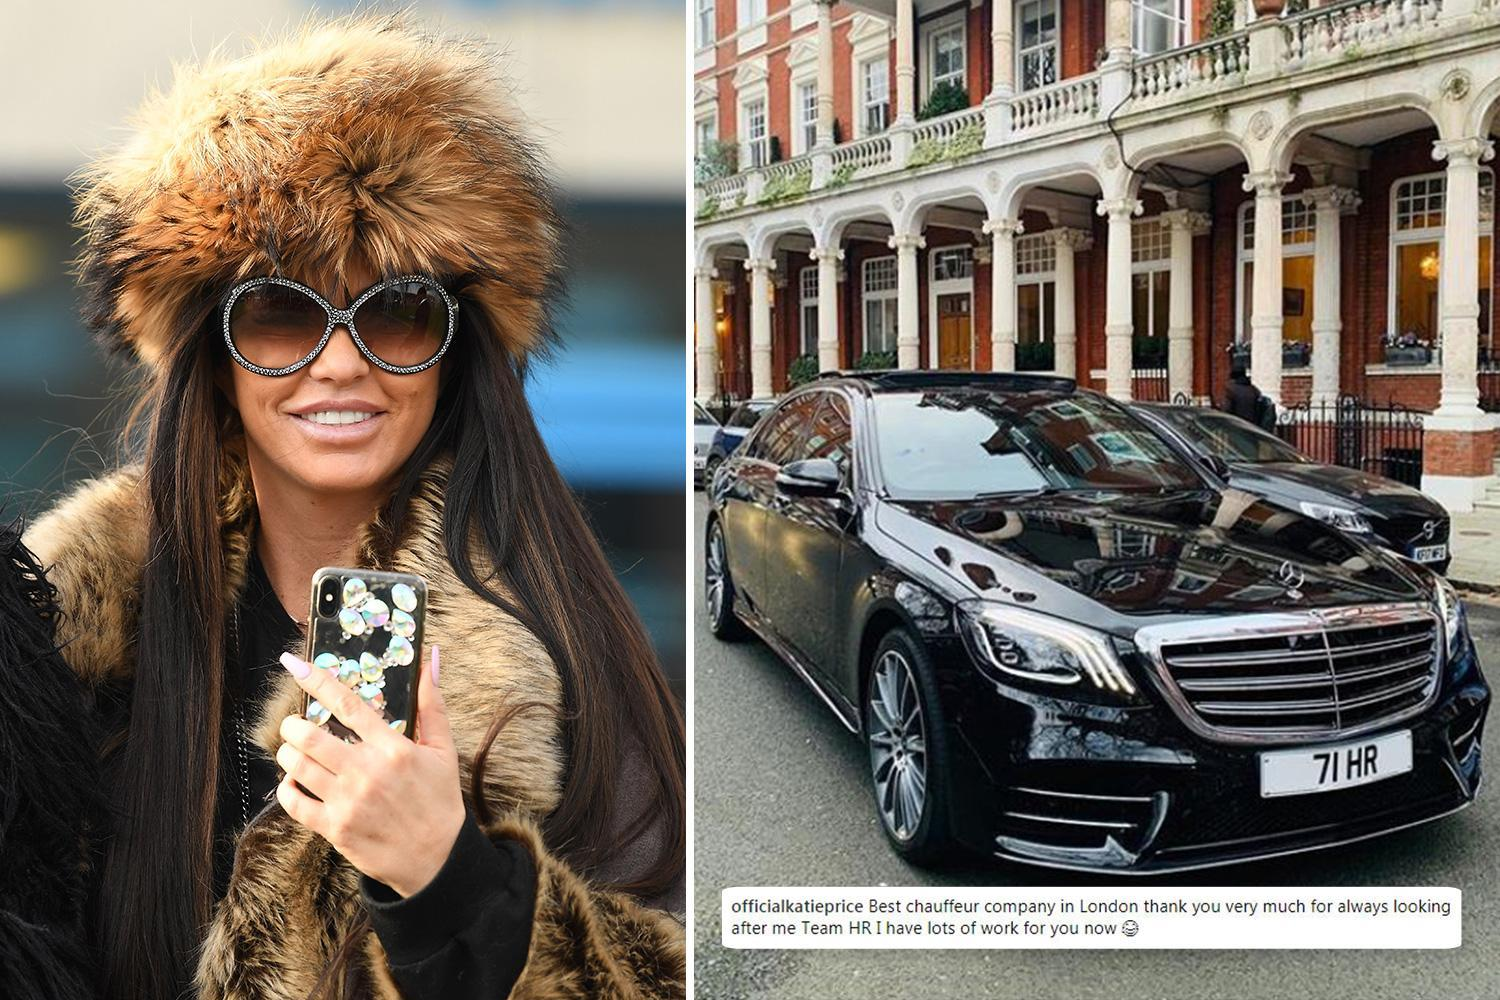 Katie Price blasted by fans for 'glorifying' her second driving ban after making joke